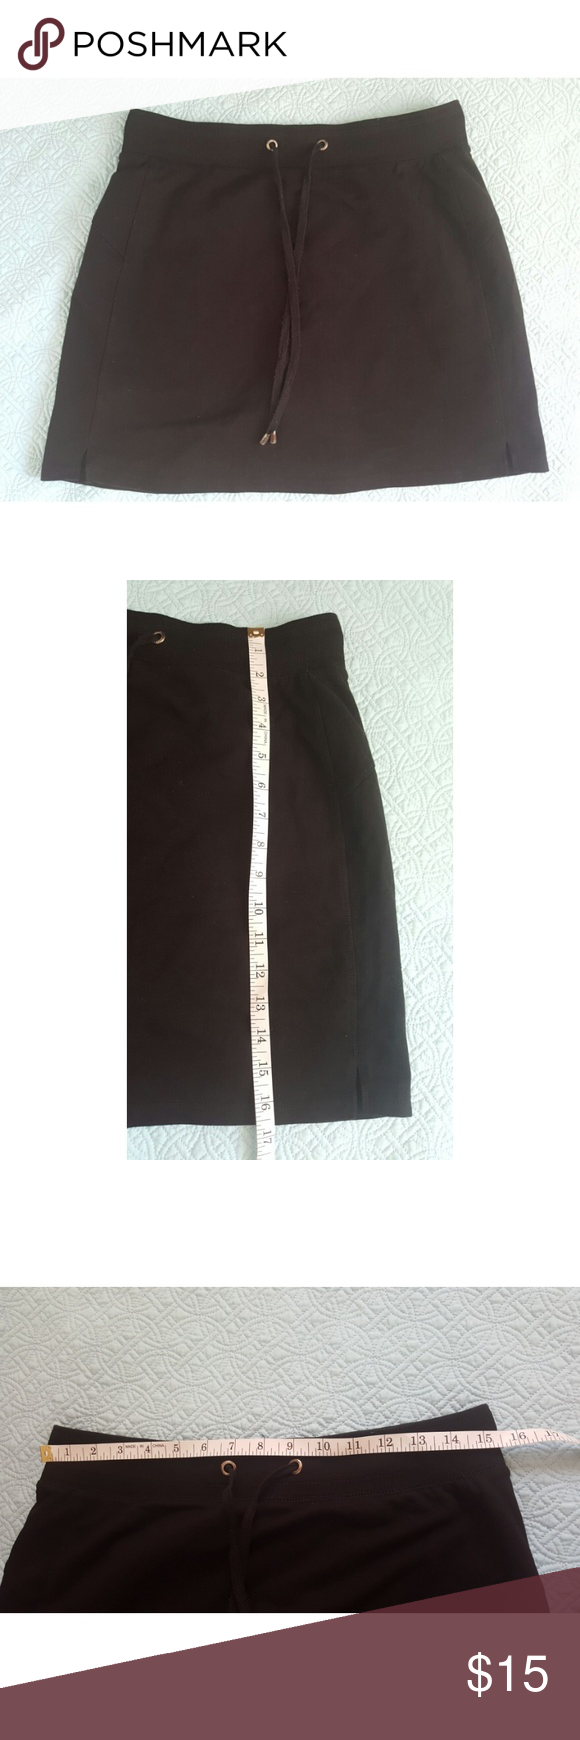 Green tea skirt size Large Soft and comfortable skirt in good condition green tea Skirts